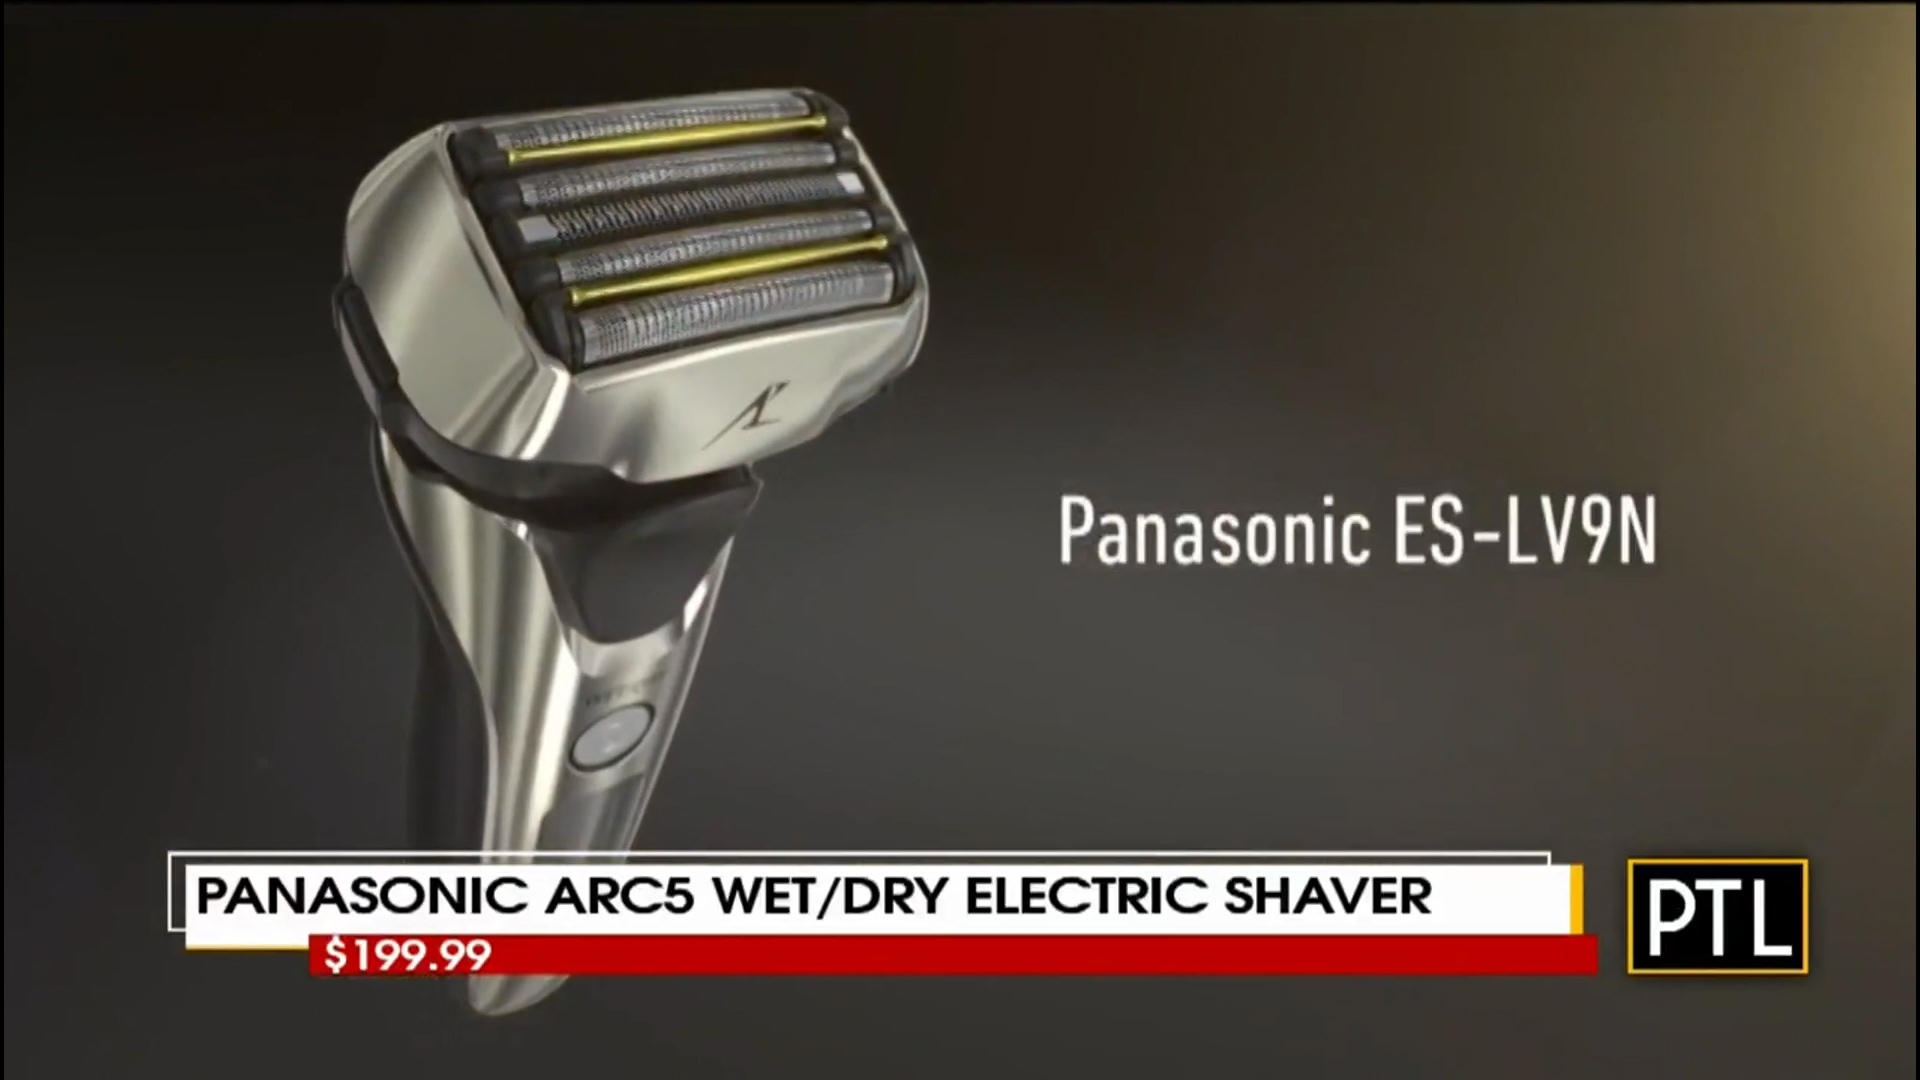 PANASONIC ARC5 WET/DRY ELECTRIC SHAVER - $199.99Shop Now